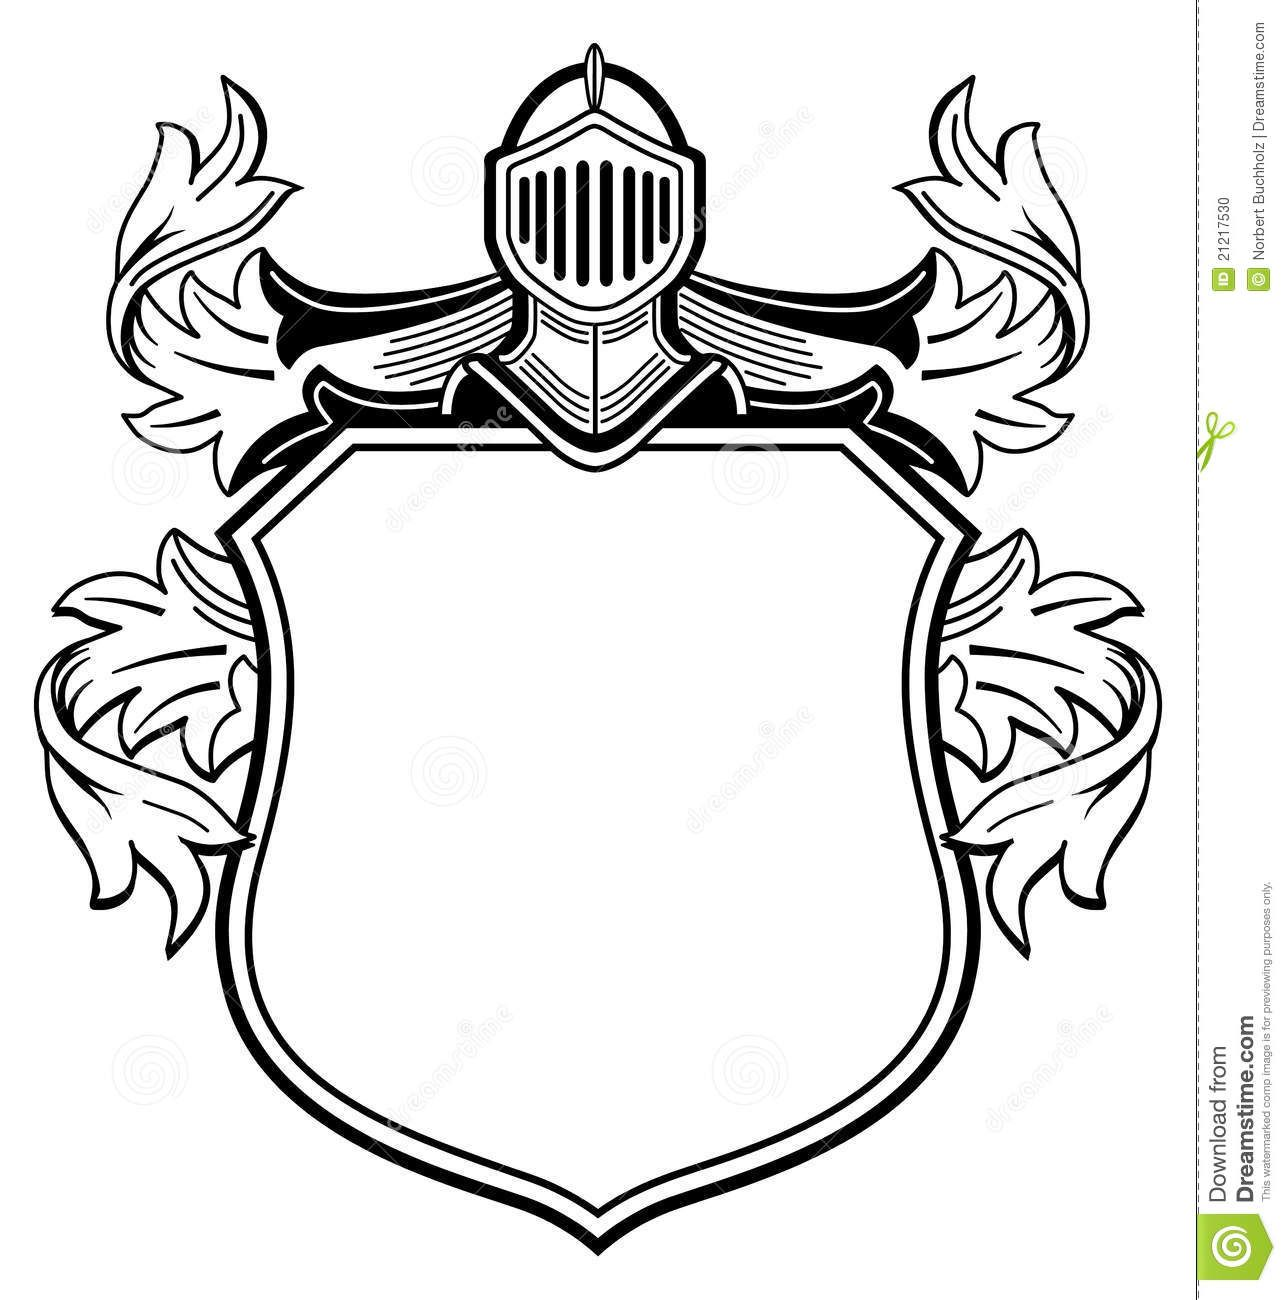 worksheet Coat Of Arms Worksheet 10 best images about coat of arms on pinterest irish medieval knight and brian boru